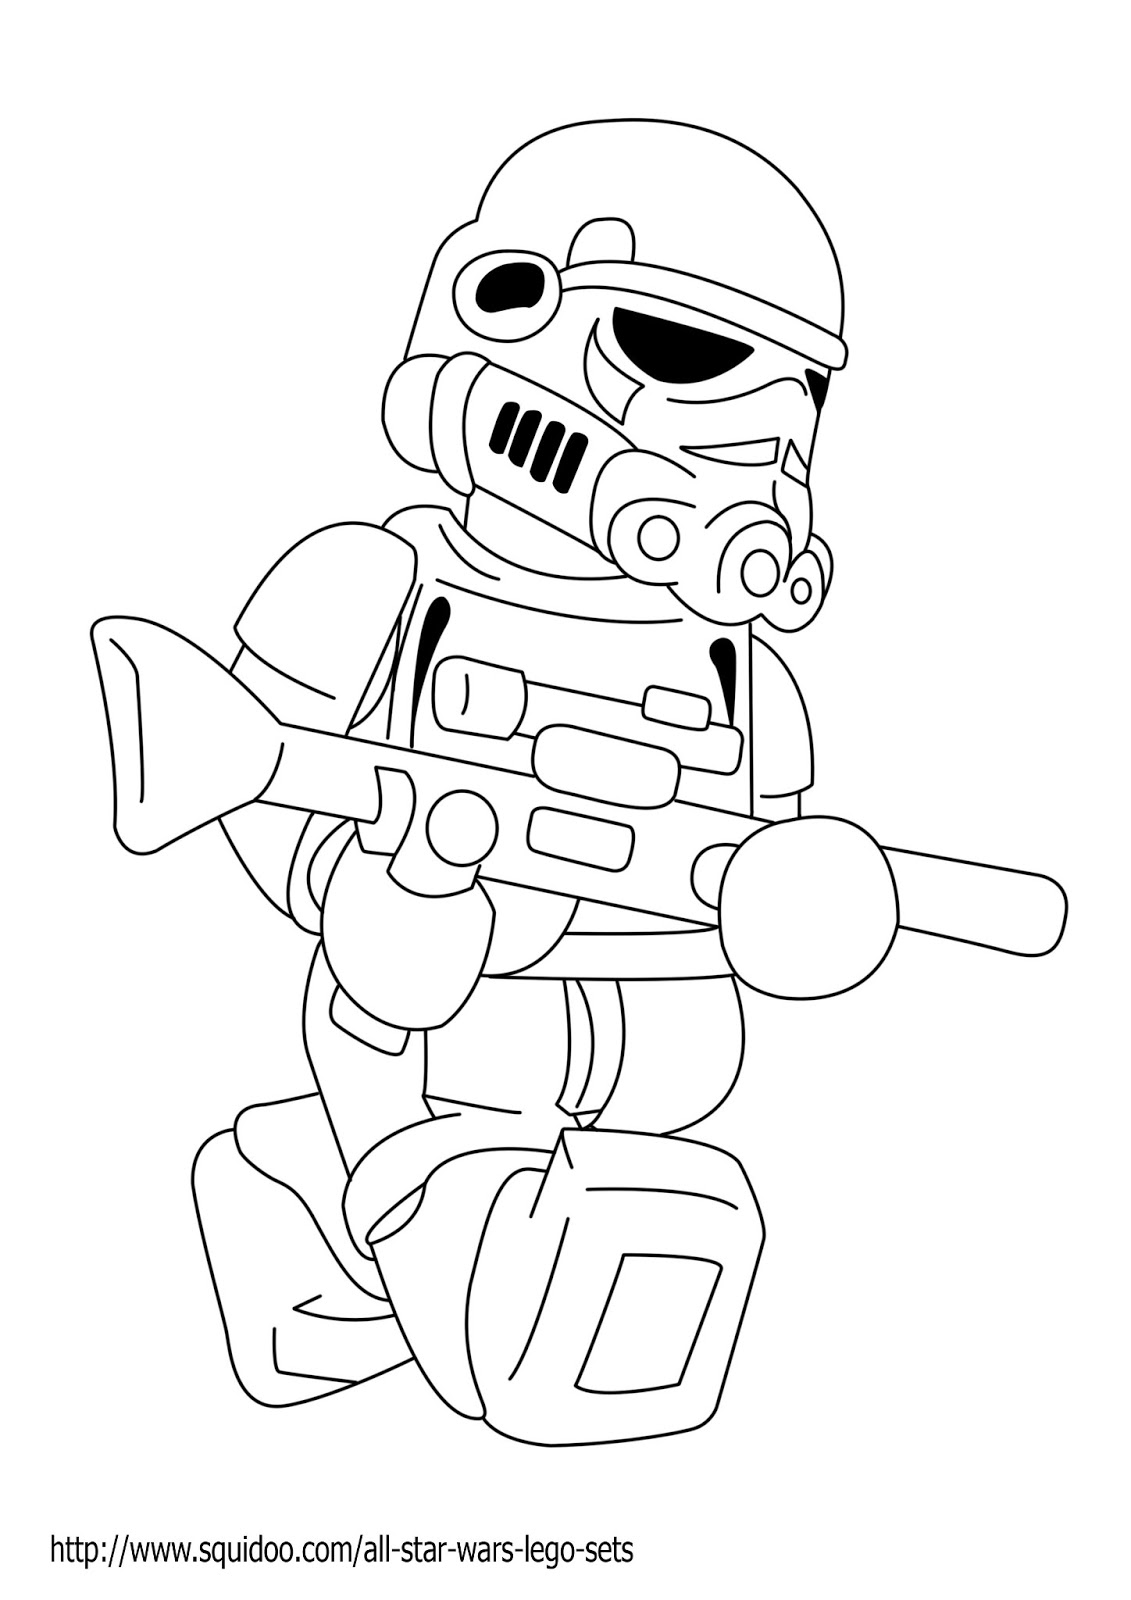 22 Dessins De Coloriage Lego Star Wars A Imprimer